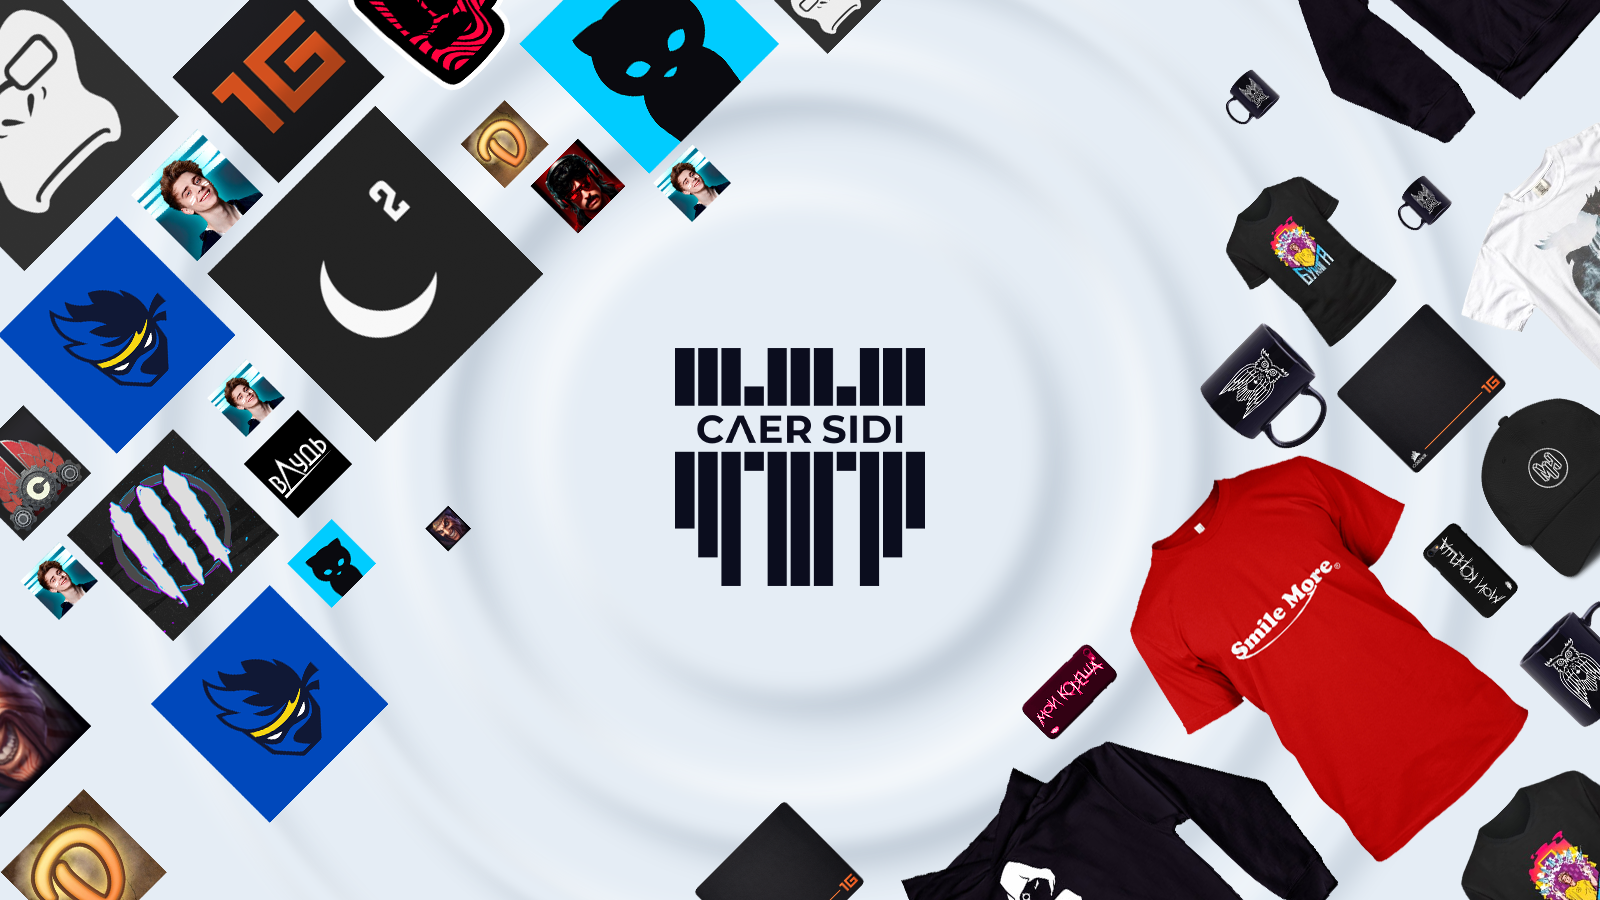 Caer Sidi - a service that helps to get additional monetization for popular influencer: increase sells of the official merchandise thanks to phygital assets